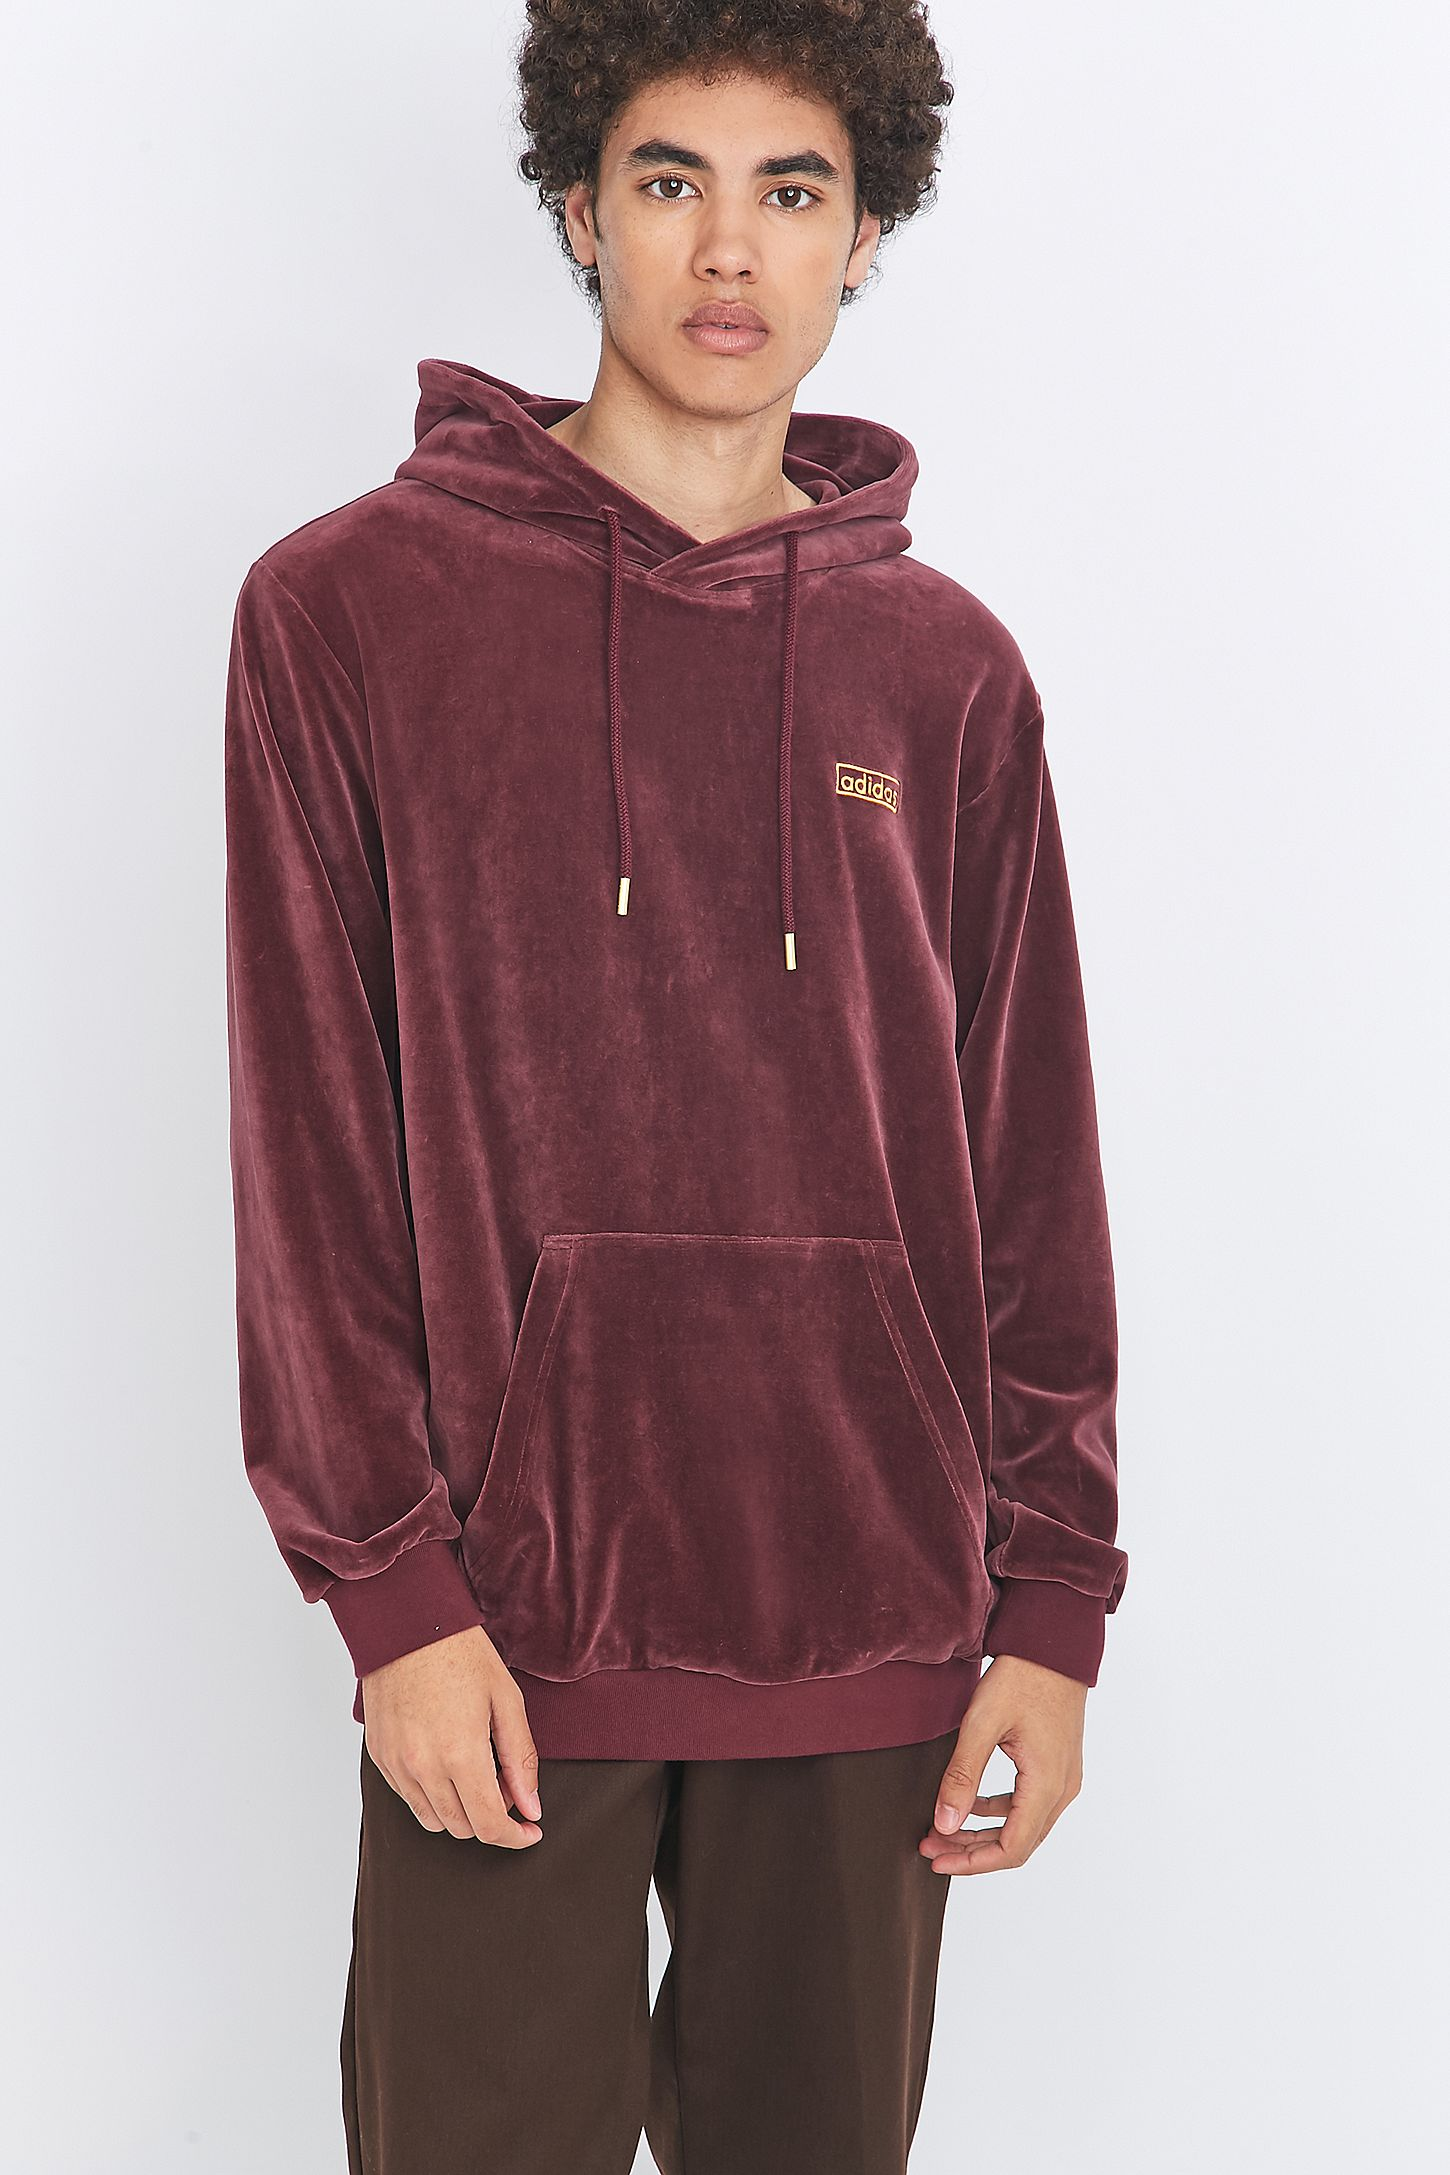 88896c0ef690 adidas Originals Maroon Velour Pullover Hoodie. Click on image to zoom.  Hover to zoom. Double Tap to Zoom